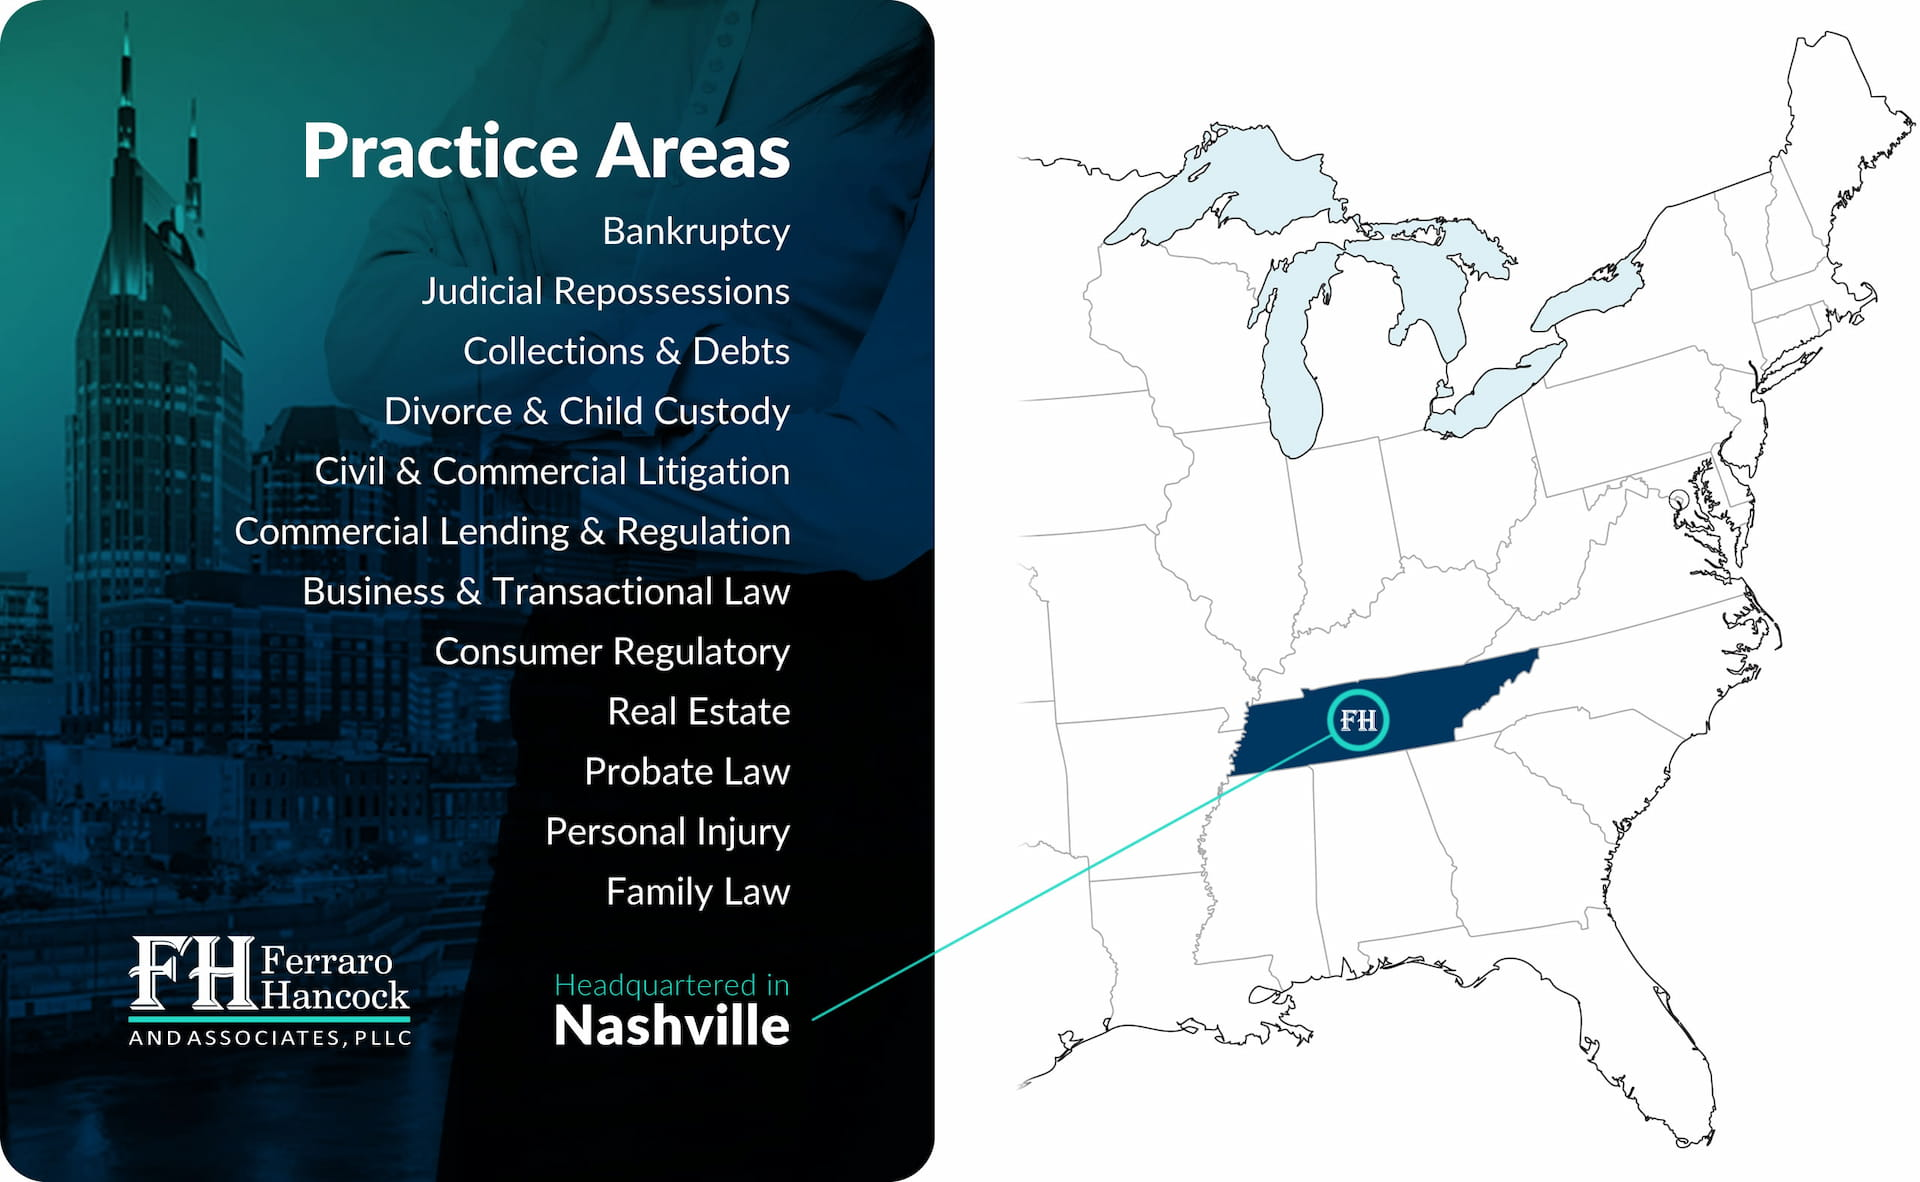 creditor-rights-bankruptcy-law-firm-attorneys-nashville-tn-hero-3